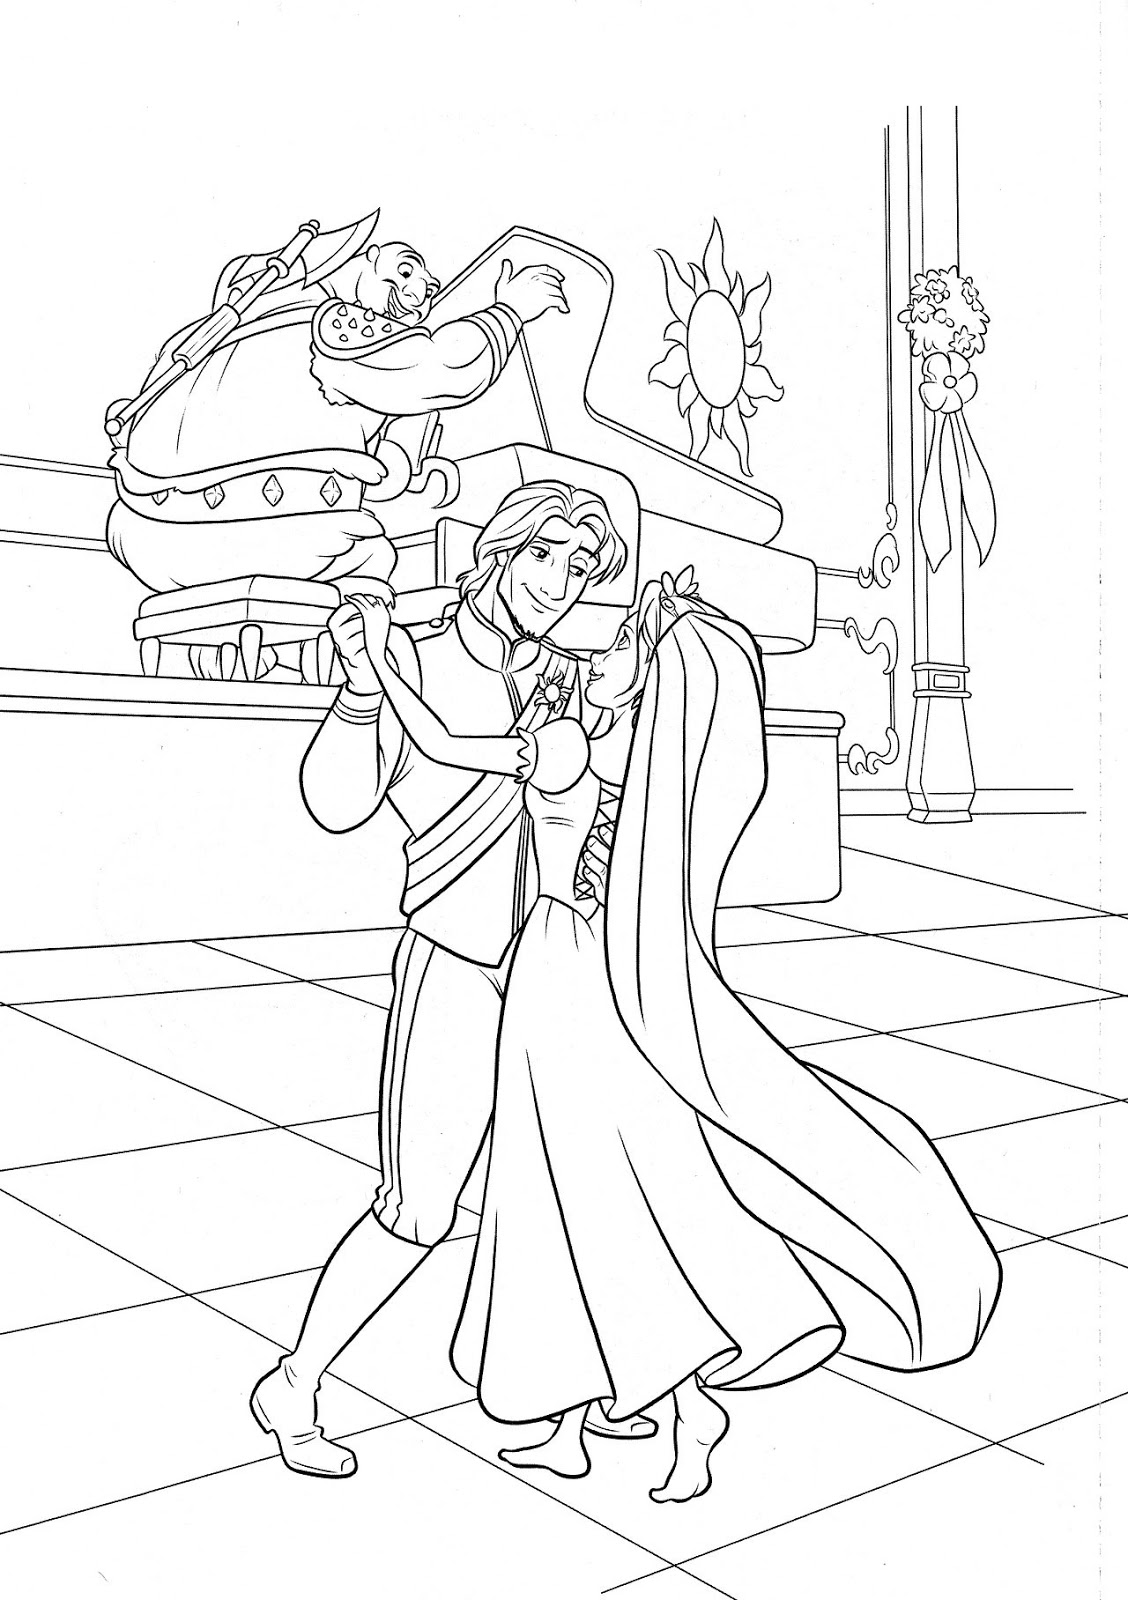 Free online rapunzel coloring pages - Picture Of Rapunzel To Color